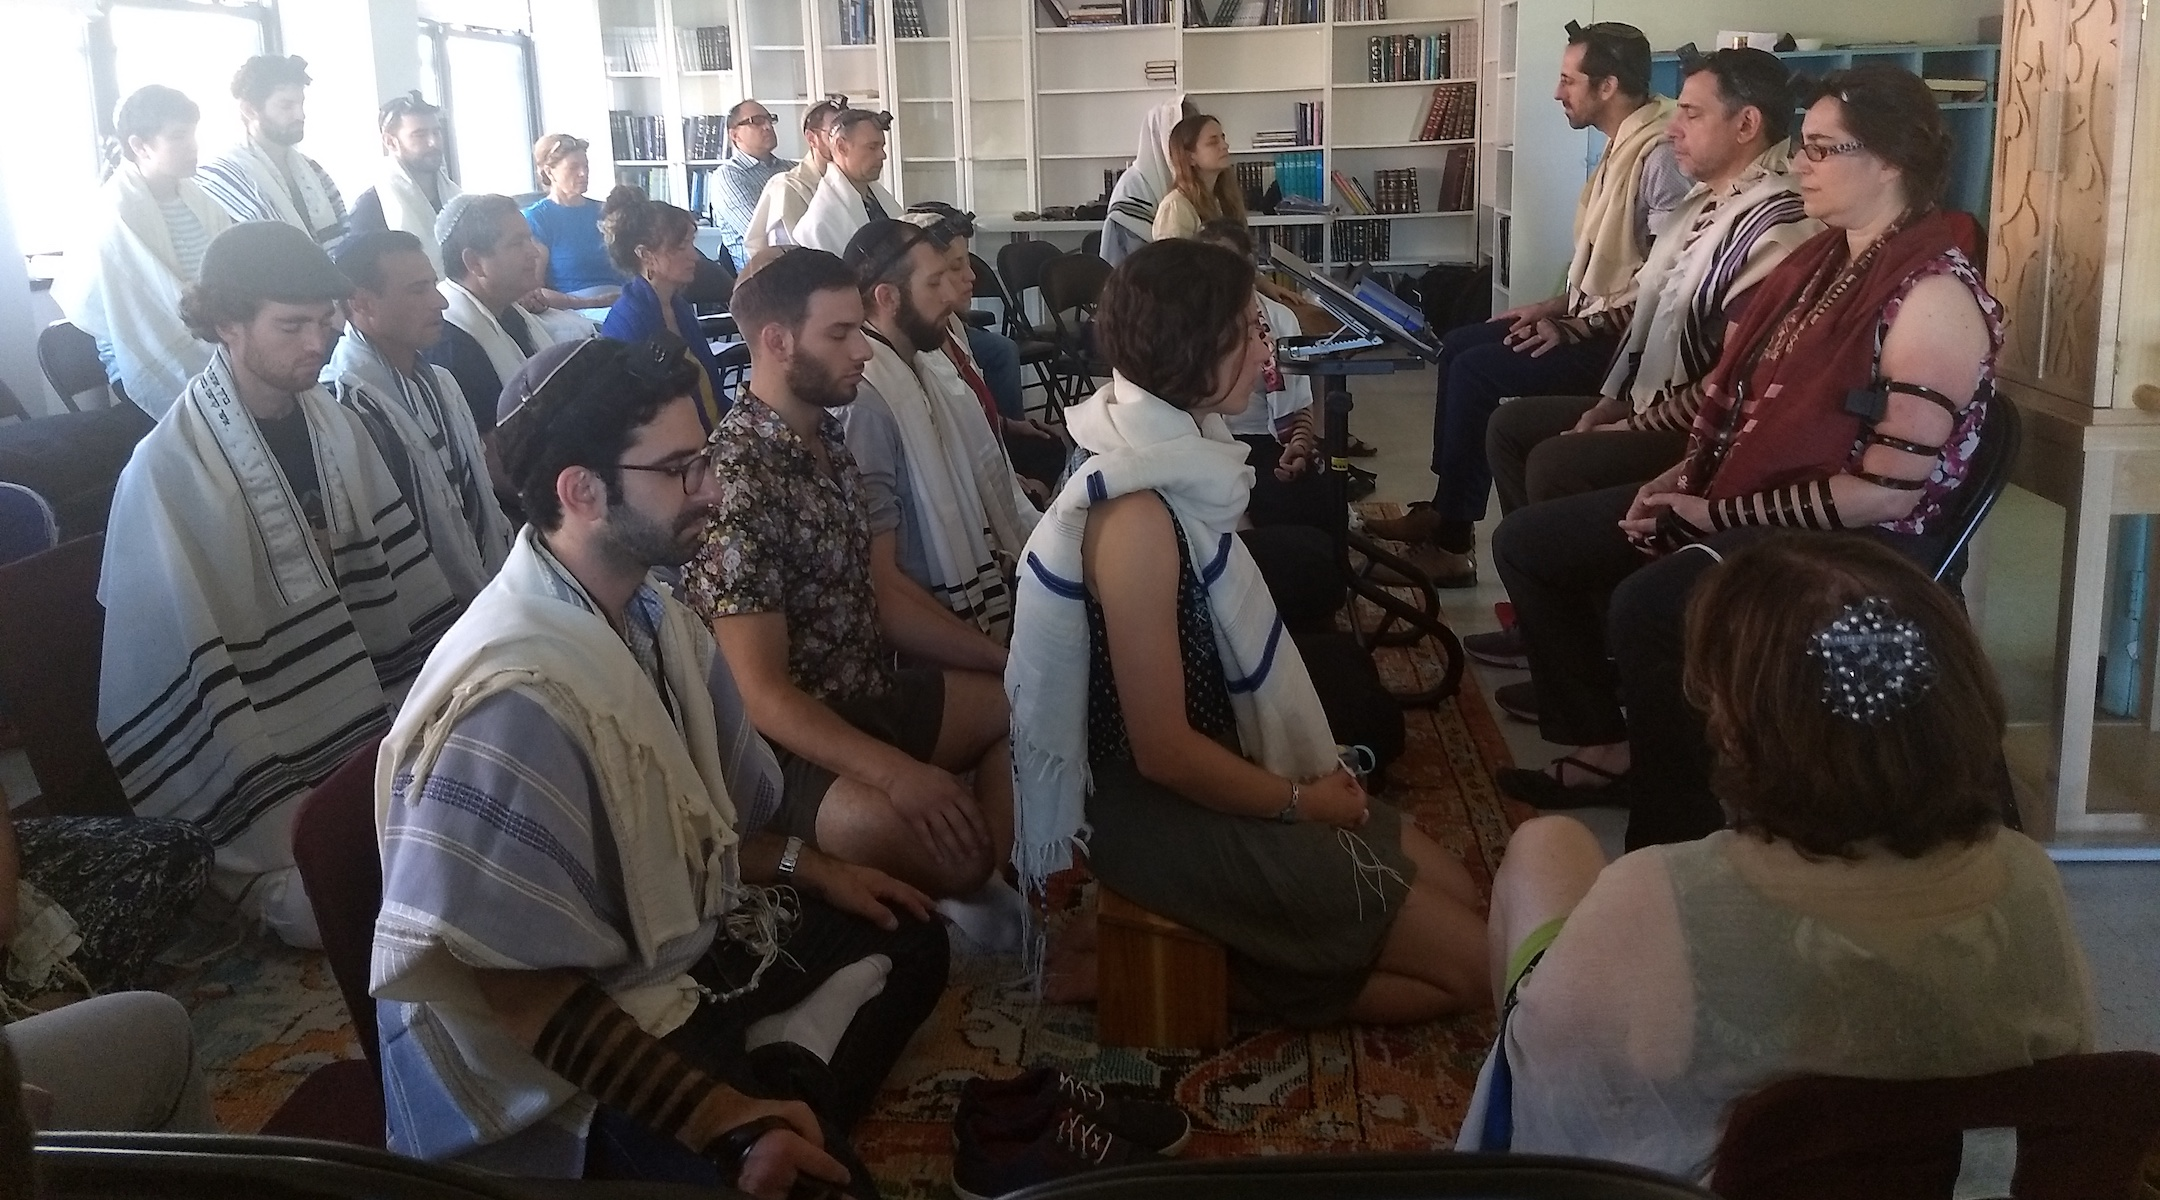 Students meditate as part of the morning prayer at Romemu Yeshiva in New York, N.Y. on July 16, 2019. The yeshiva combines intensive study of Jewish text with mindfulness and mysticism. (Ben Sales)